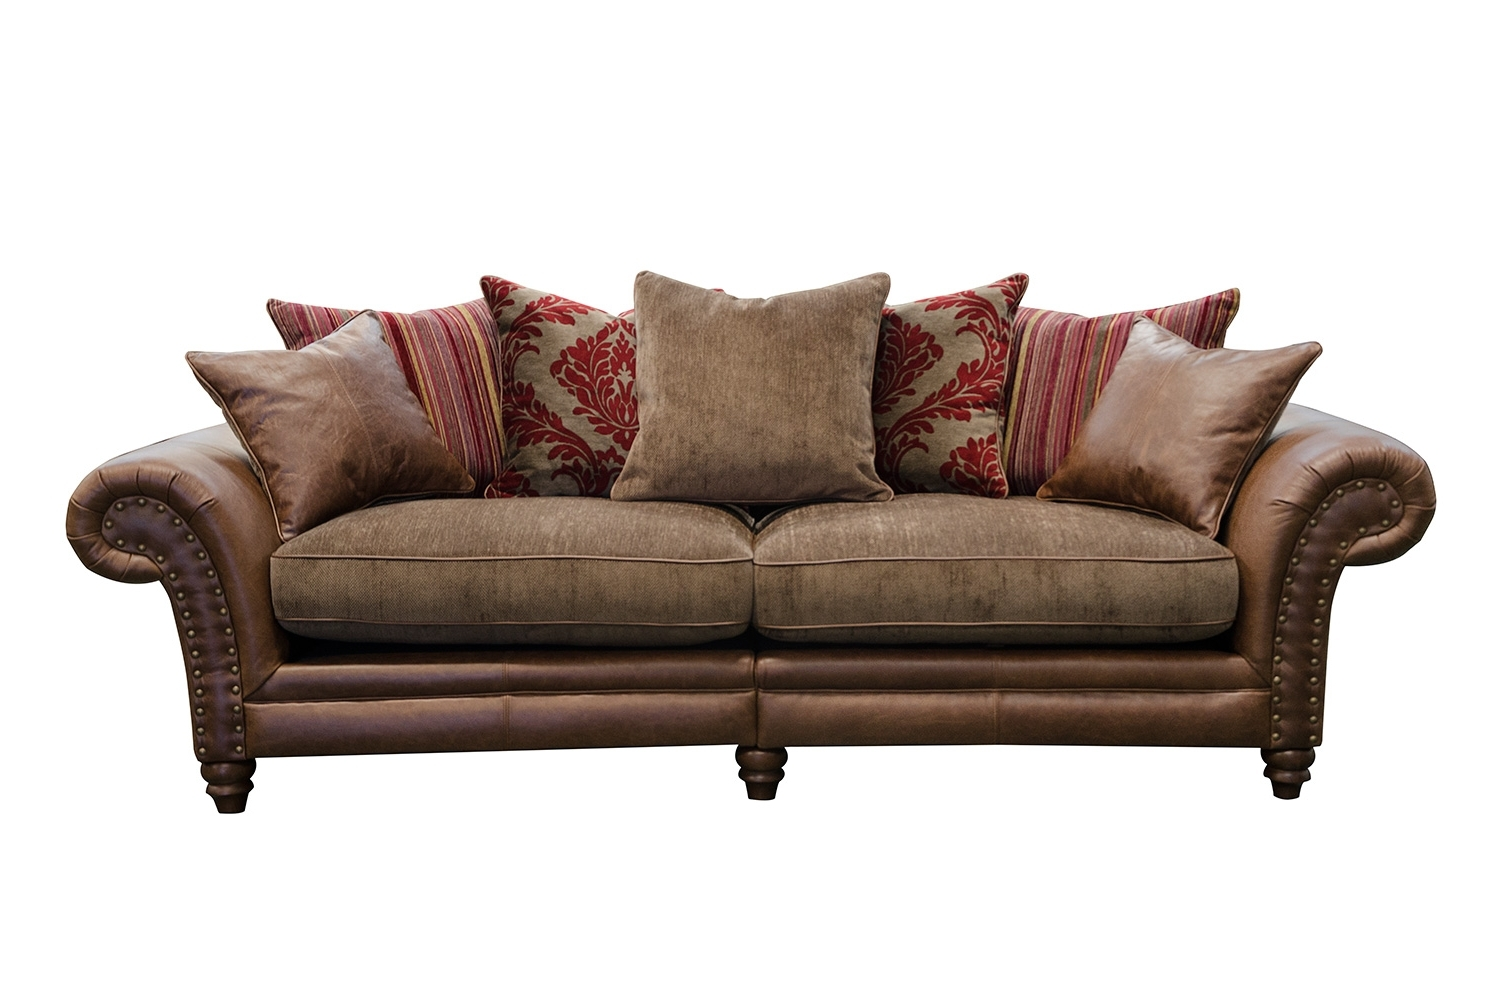 4 Seater Sofas Regarding Current Hudson 4 Seater Sofa – Alexander And James (View 2 of 20)